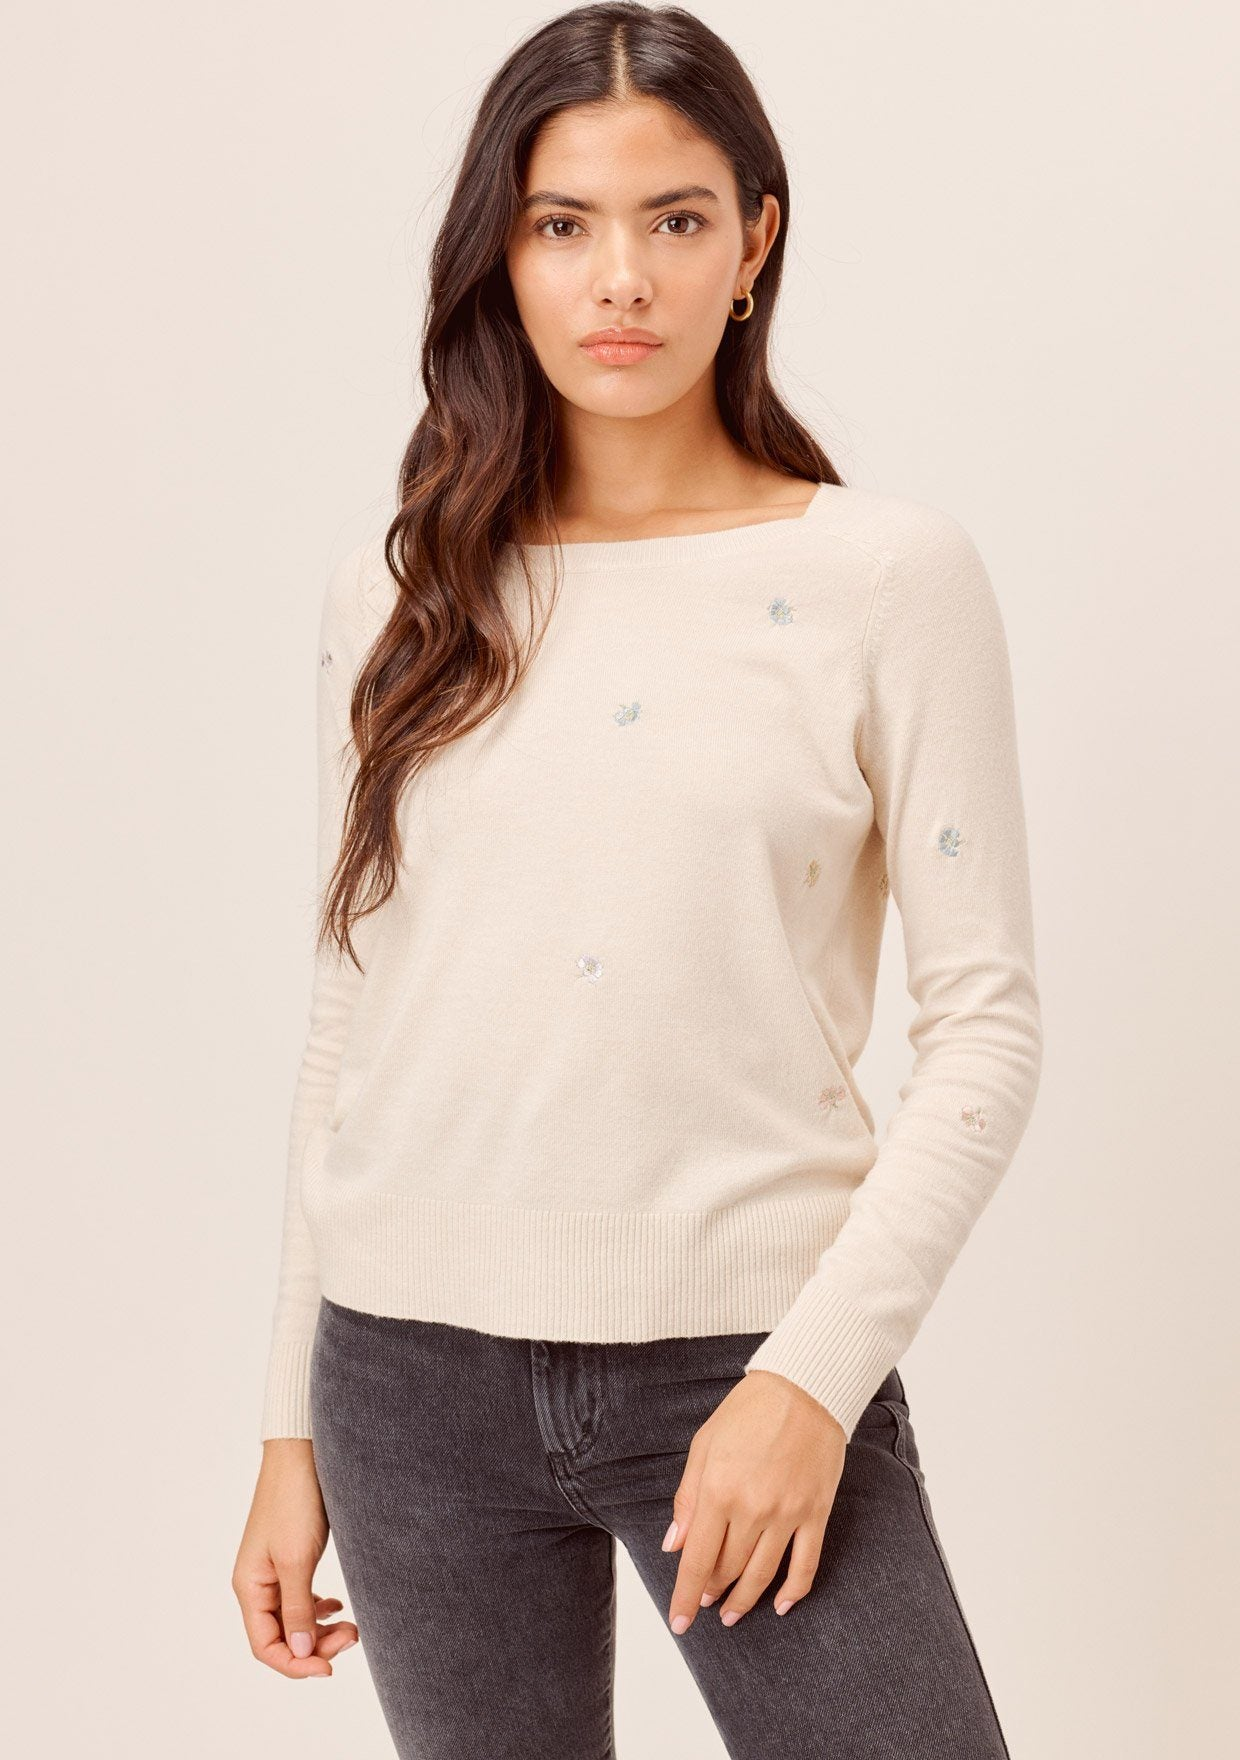 [Color: Bone] Lovestitch bone Super soft, long sleeve, crew neck pullover with all-over embroidered flowers.